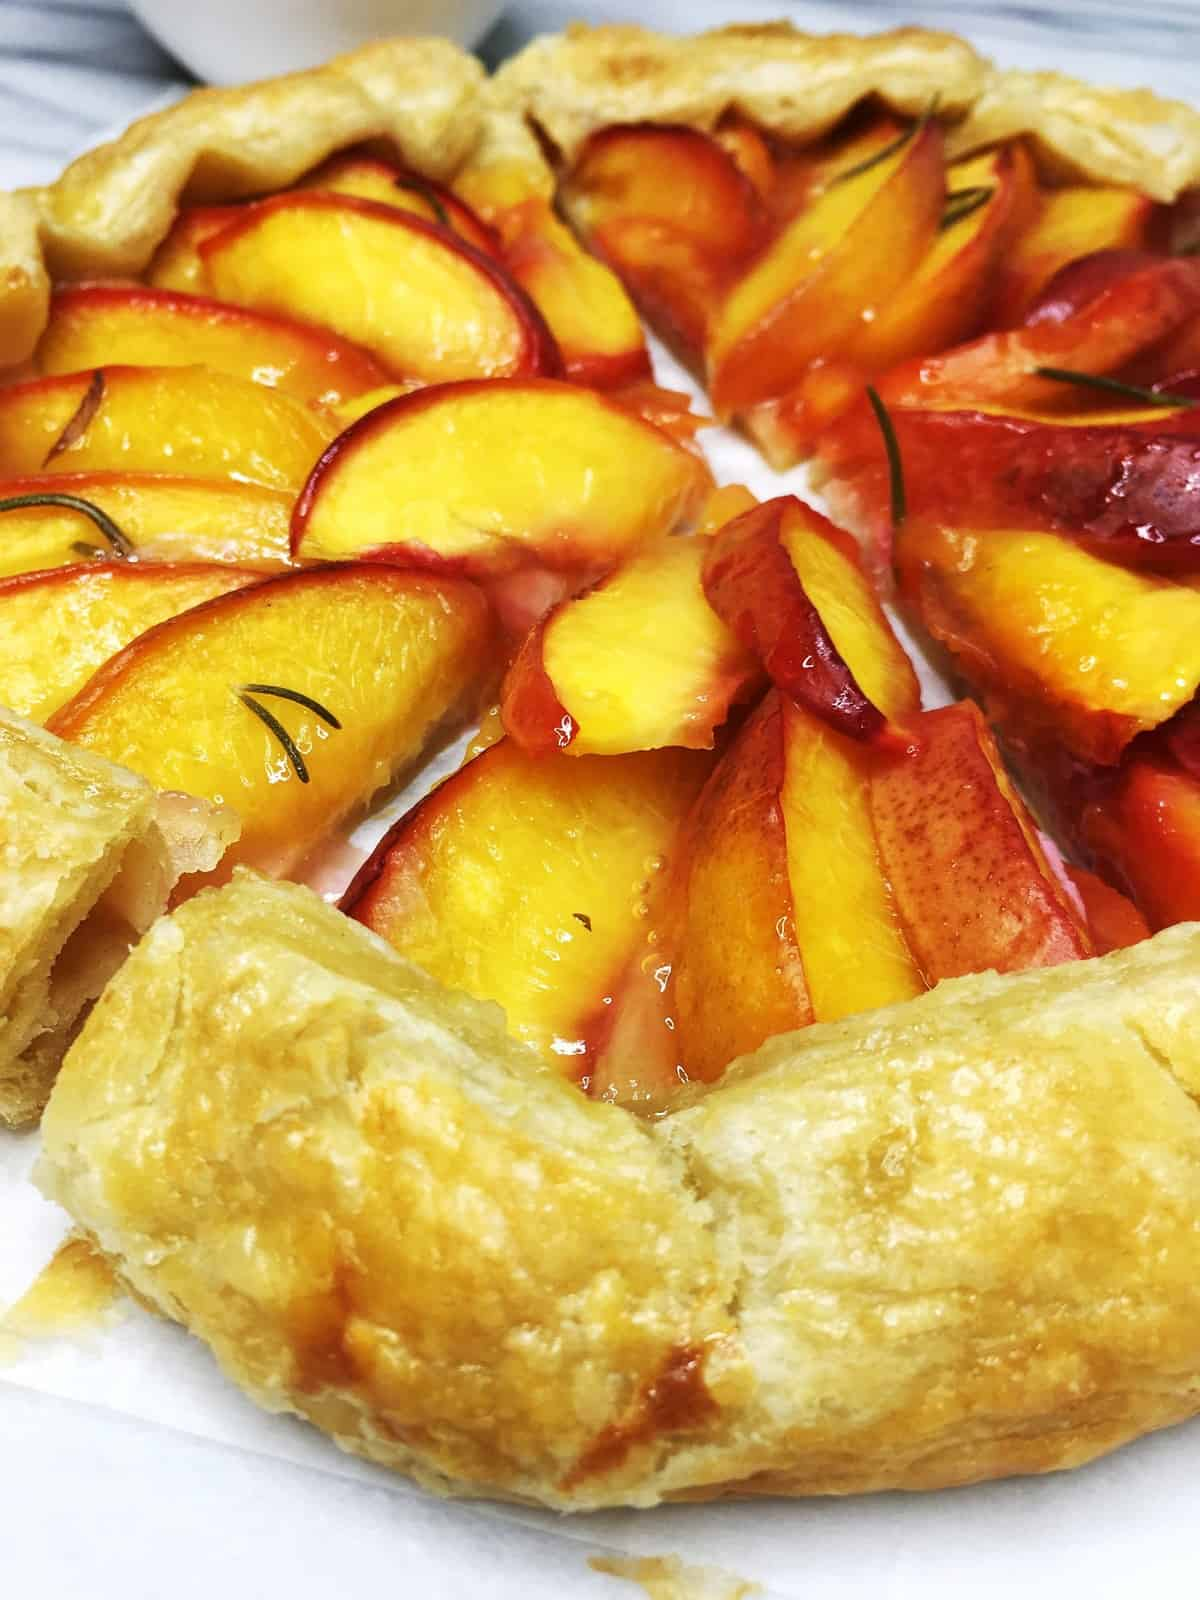 Peach galette cut into pieces on a marble board